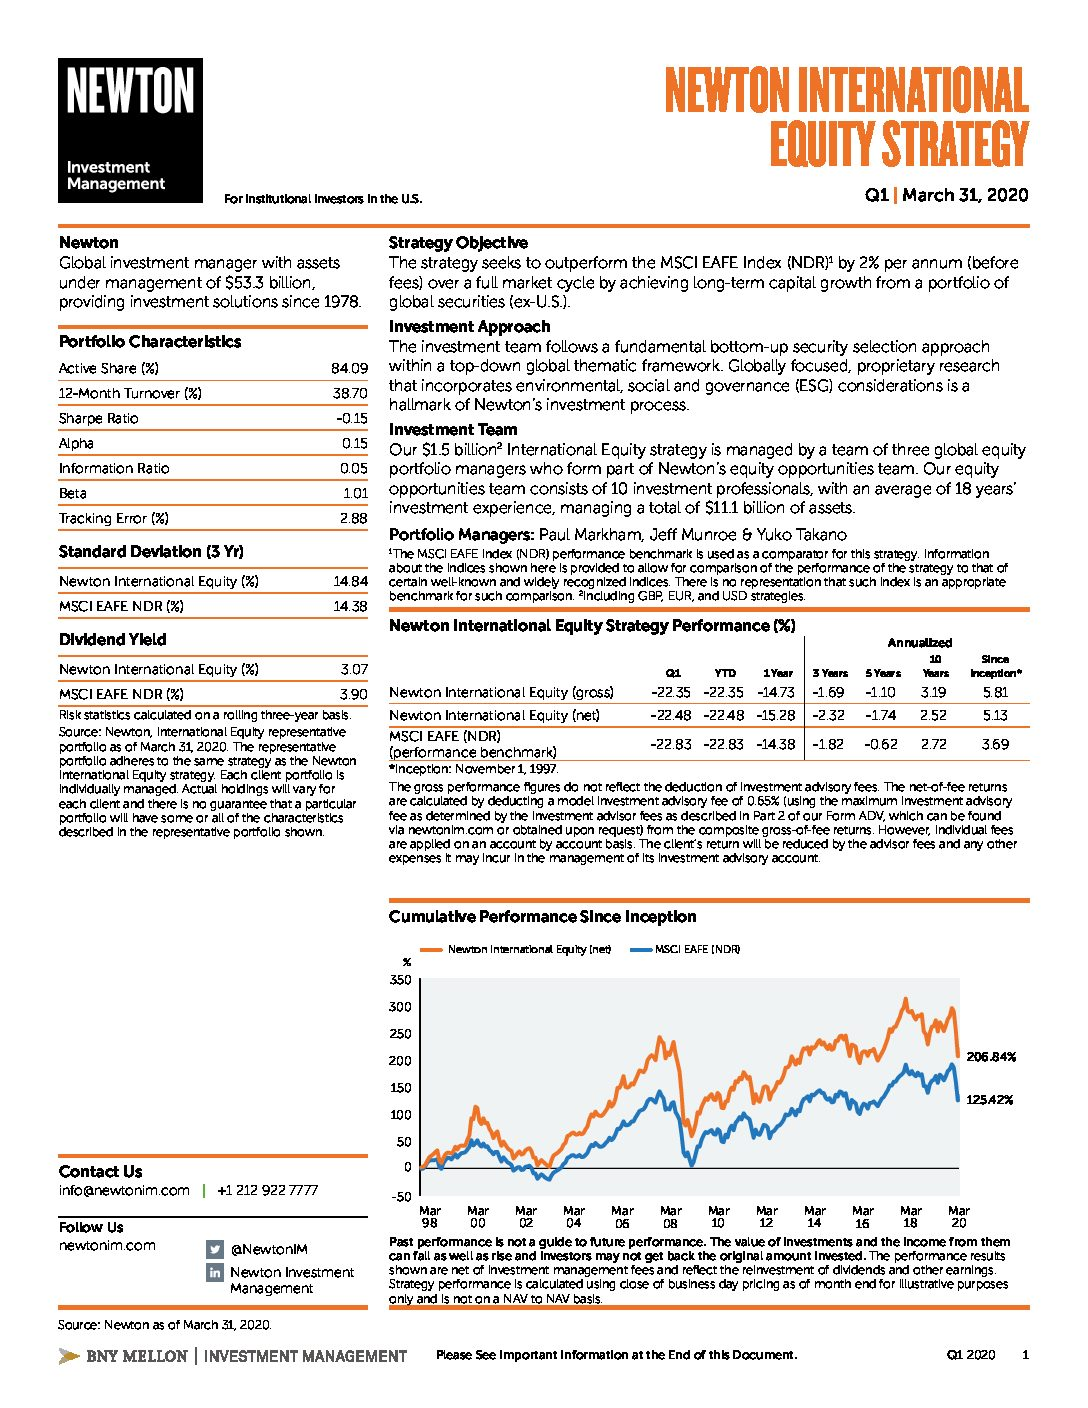 NIMNA International Equity strategy factsheet